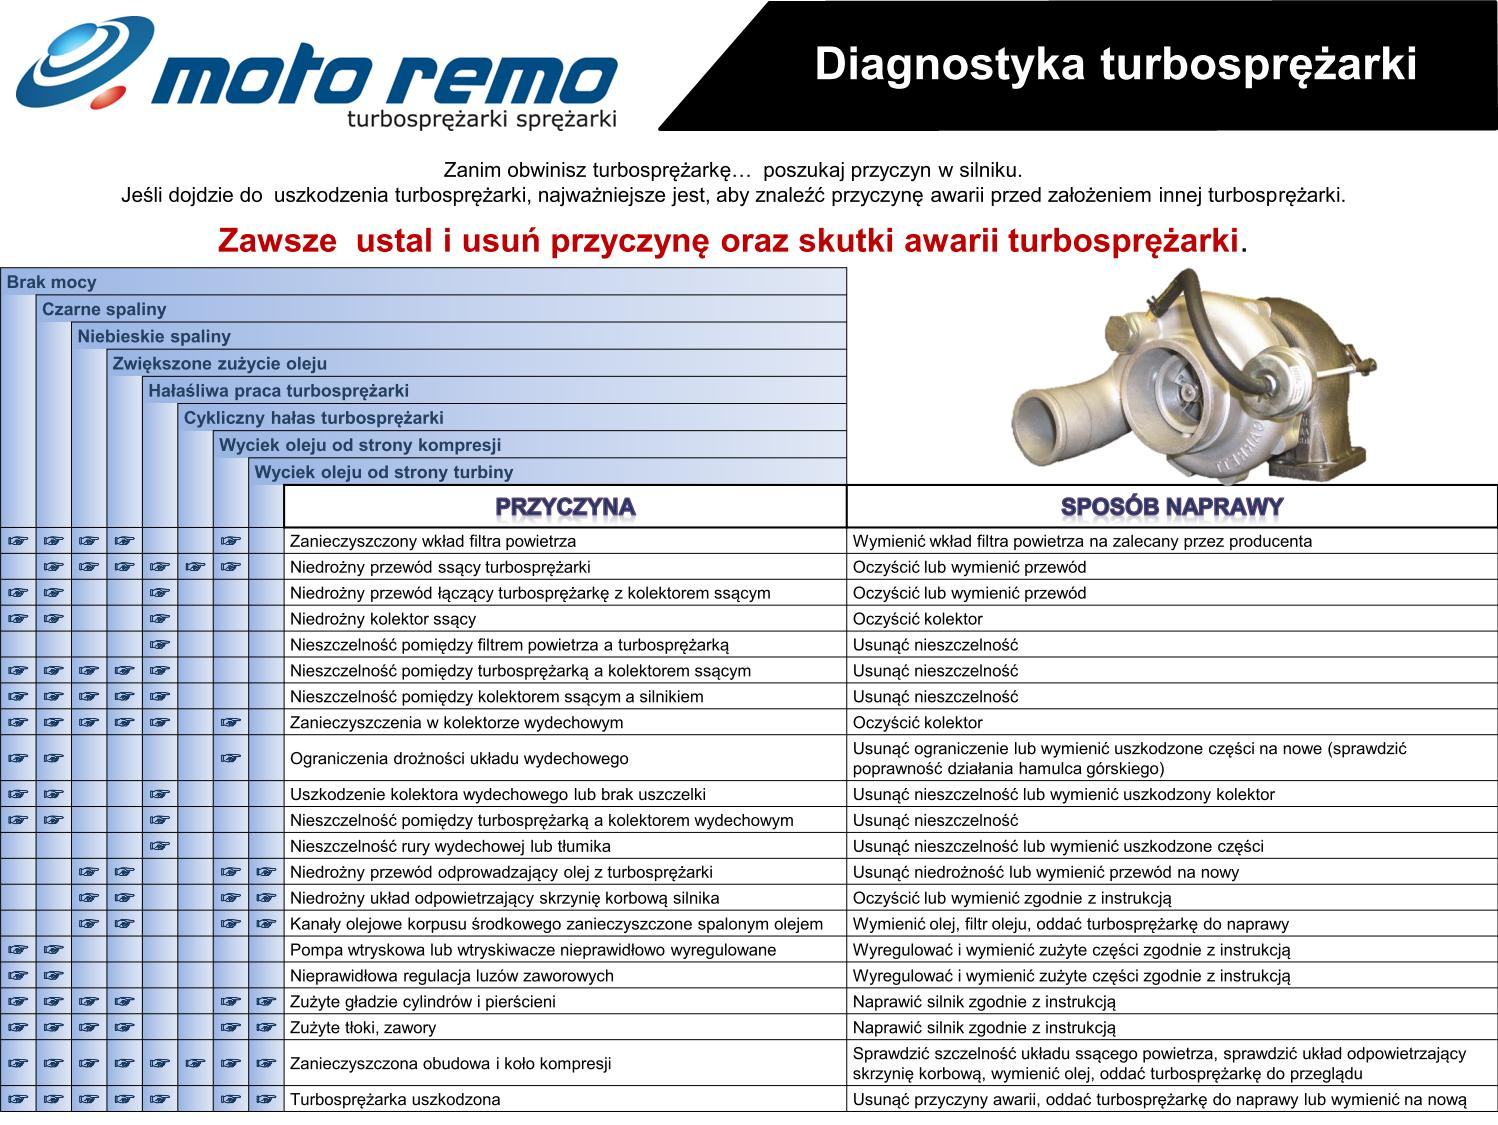 turbo diagnostyka